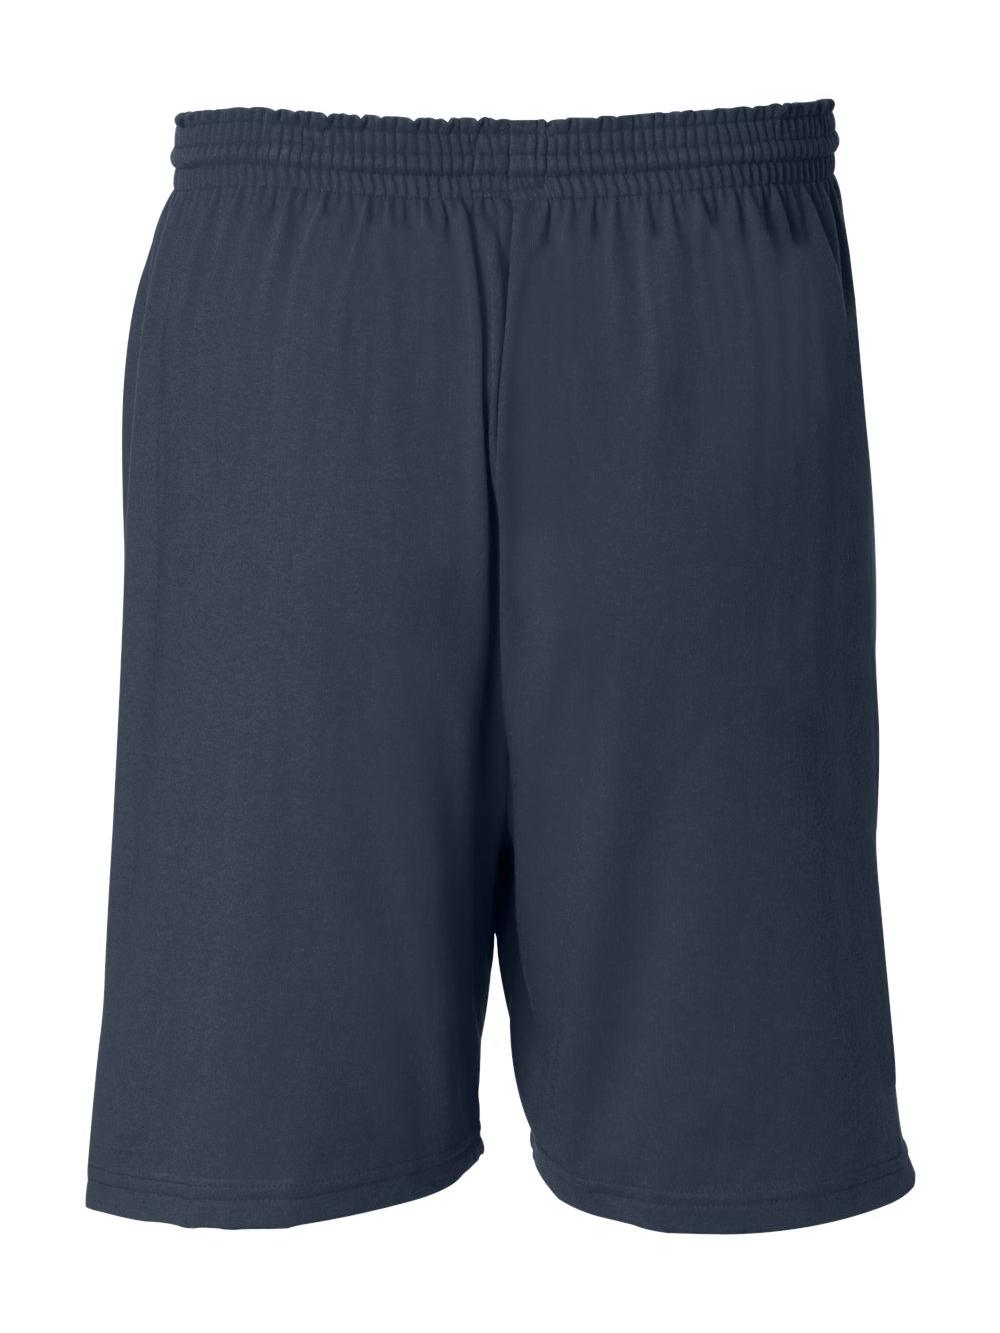 Champion-Cotton-Gym-Shorts-8187 thumbnail 7